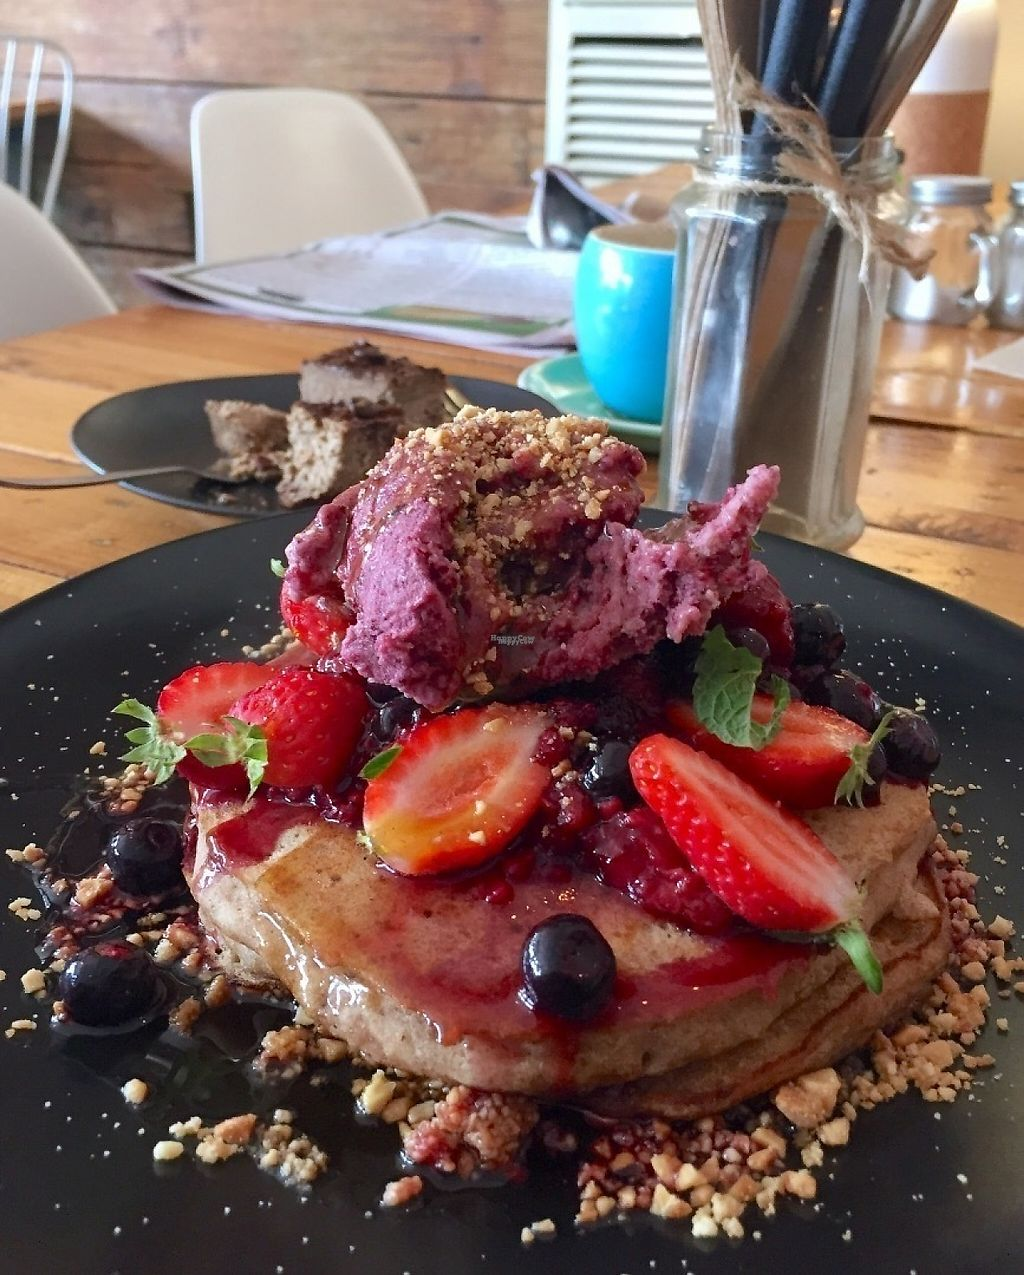 "Photo of The Storehouse  by <a href=""/members/profile/karlaess"">karlaess</a> <br/>Buckwheat pancakes <br/> April 30, 2017  - <a href='/contact/abuse/image/78076/254028'>Report</a>"